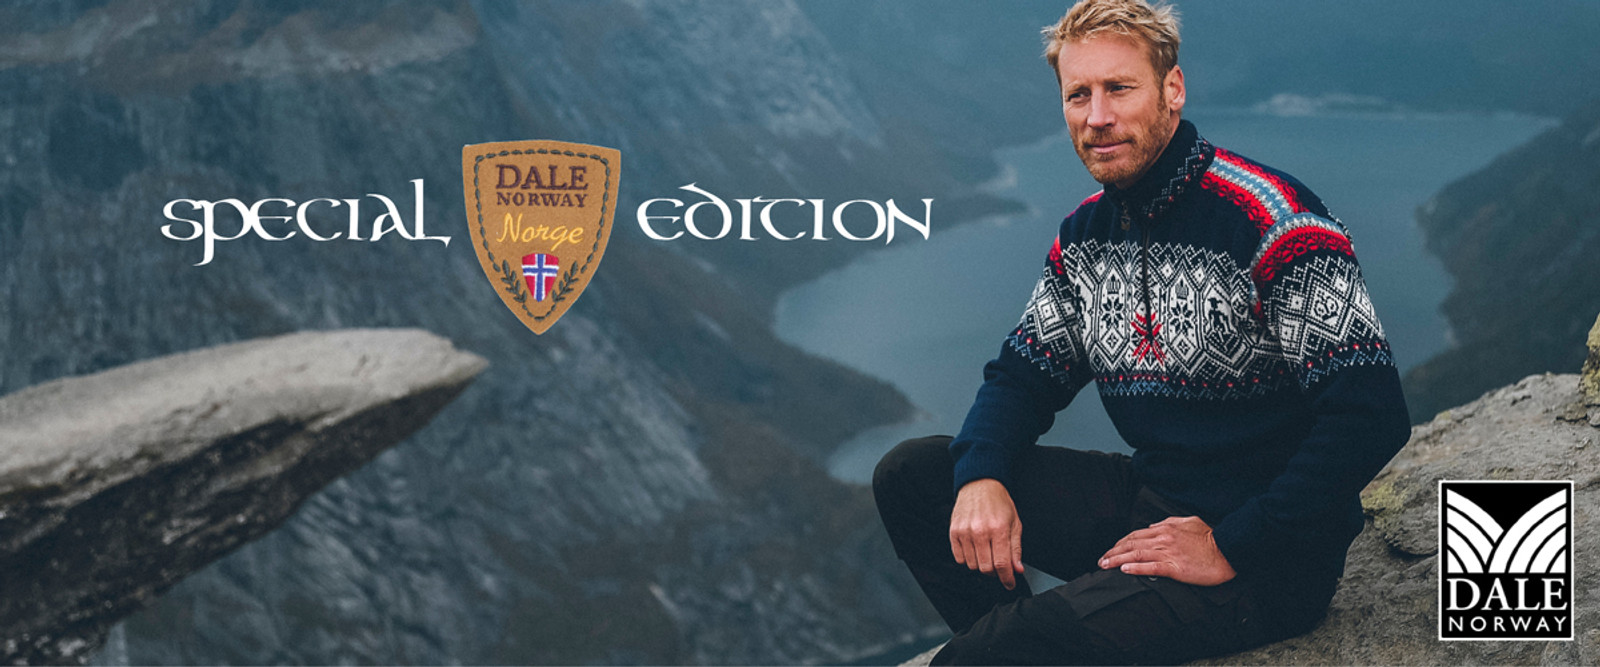 Dale of Norway Norge Special Edition Sweater